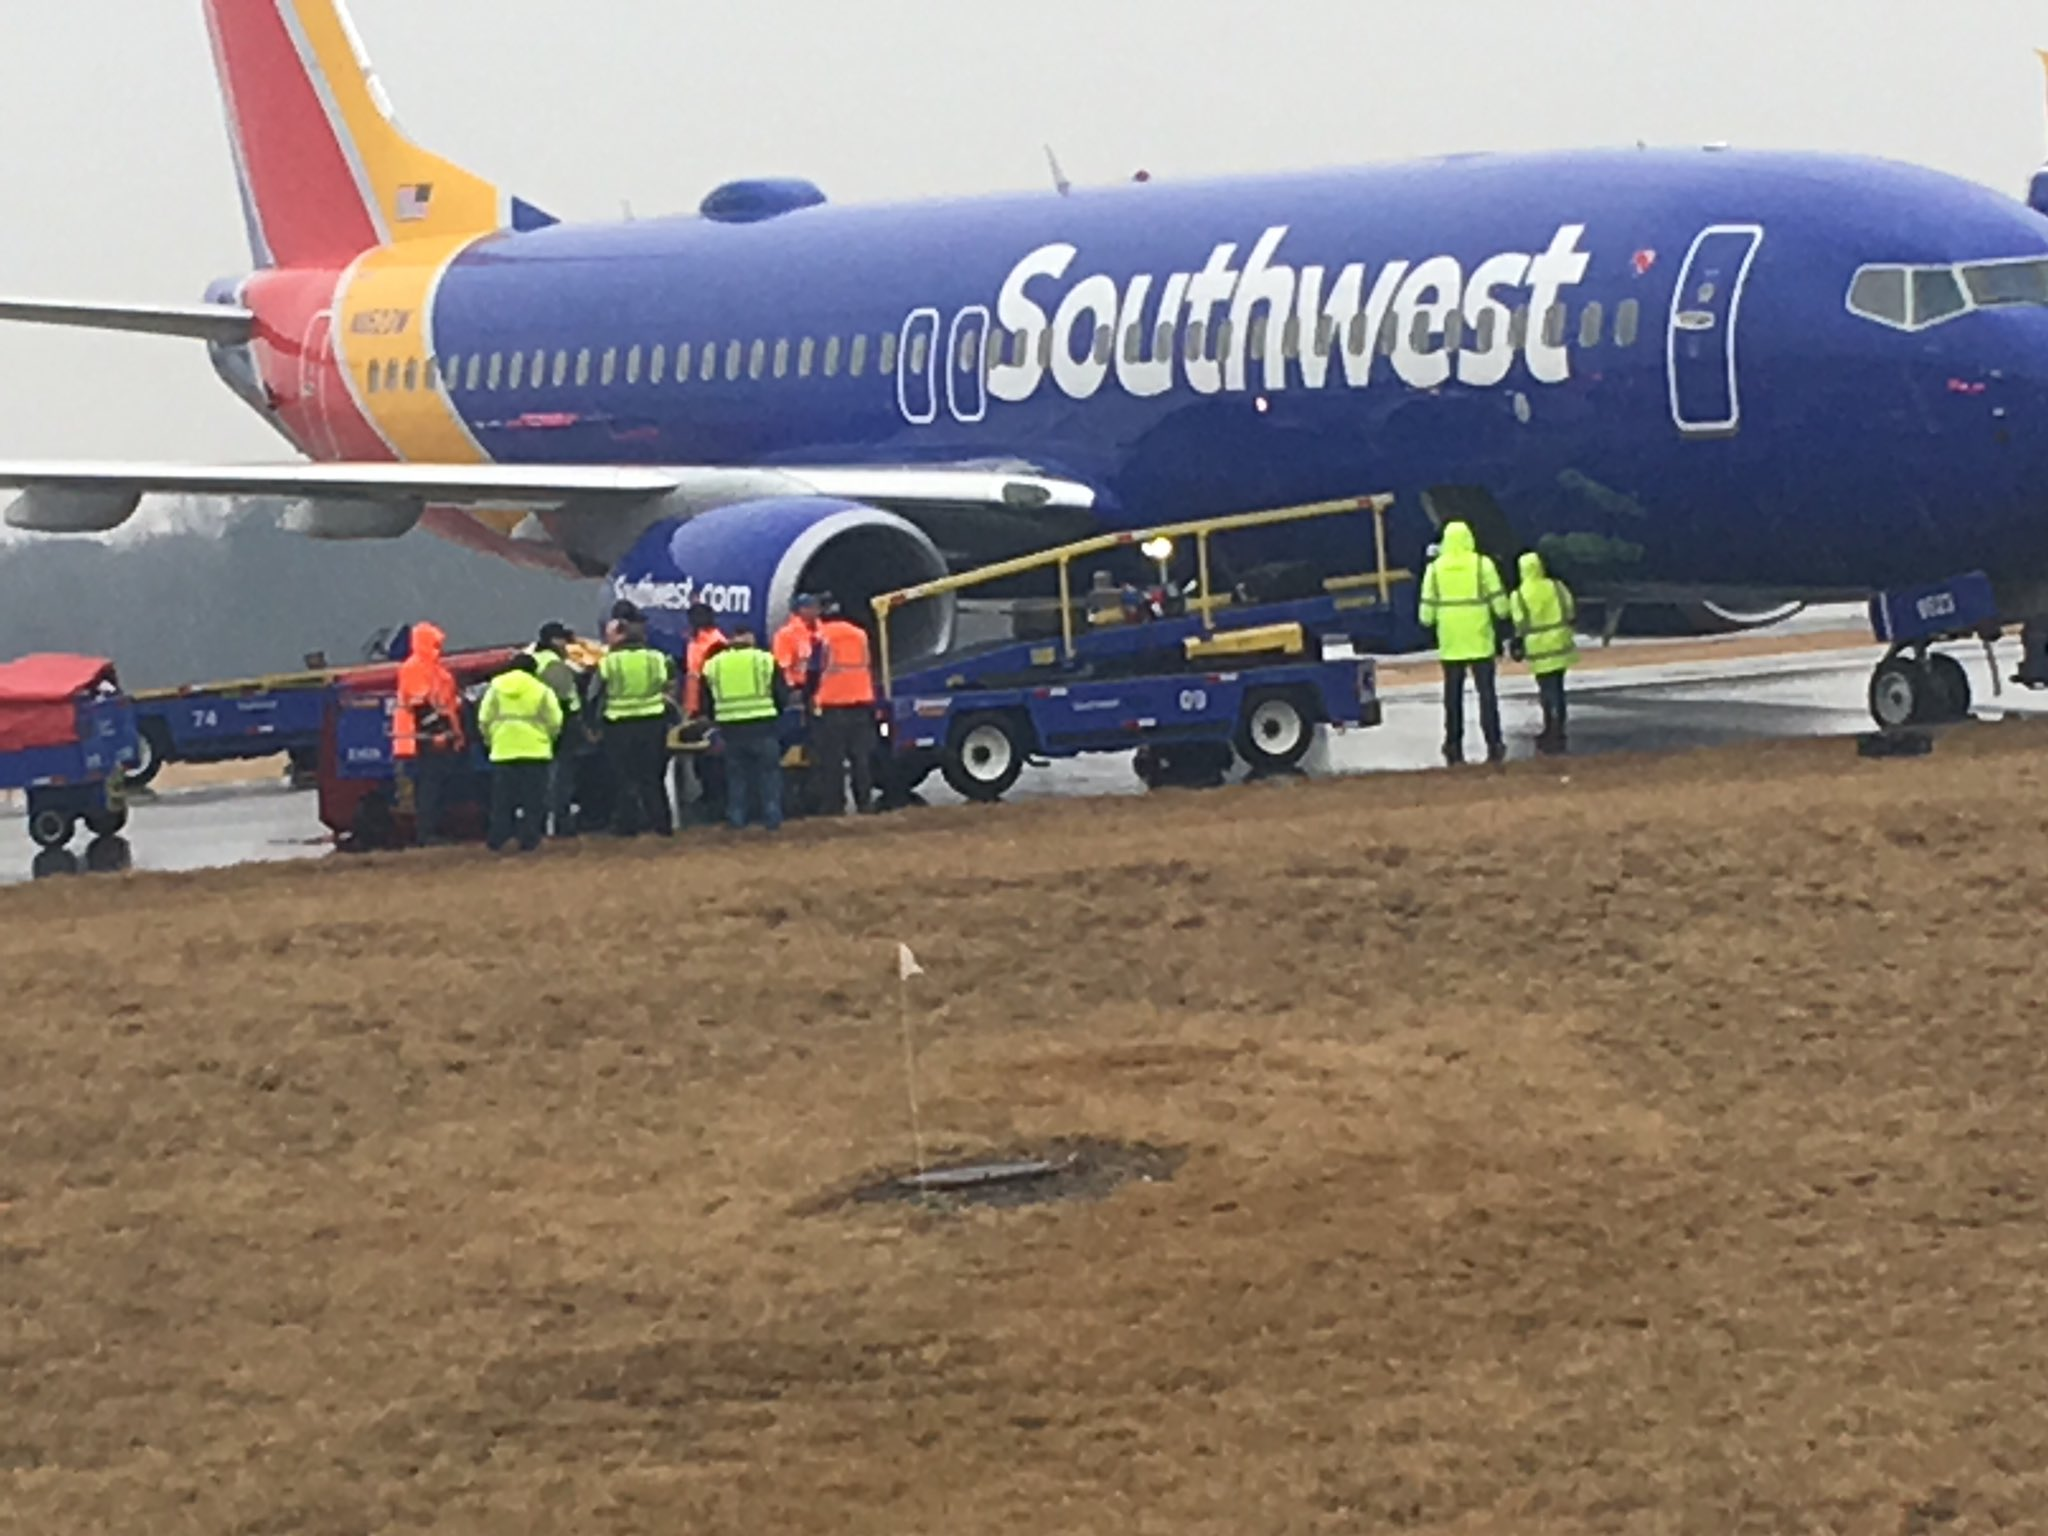 BREAKING NEWS: Plane Reportedly Skids at BWI